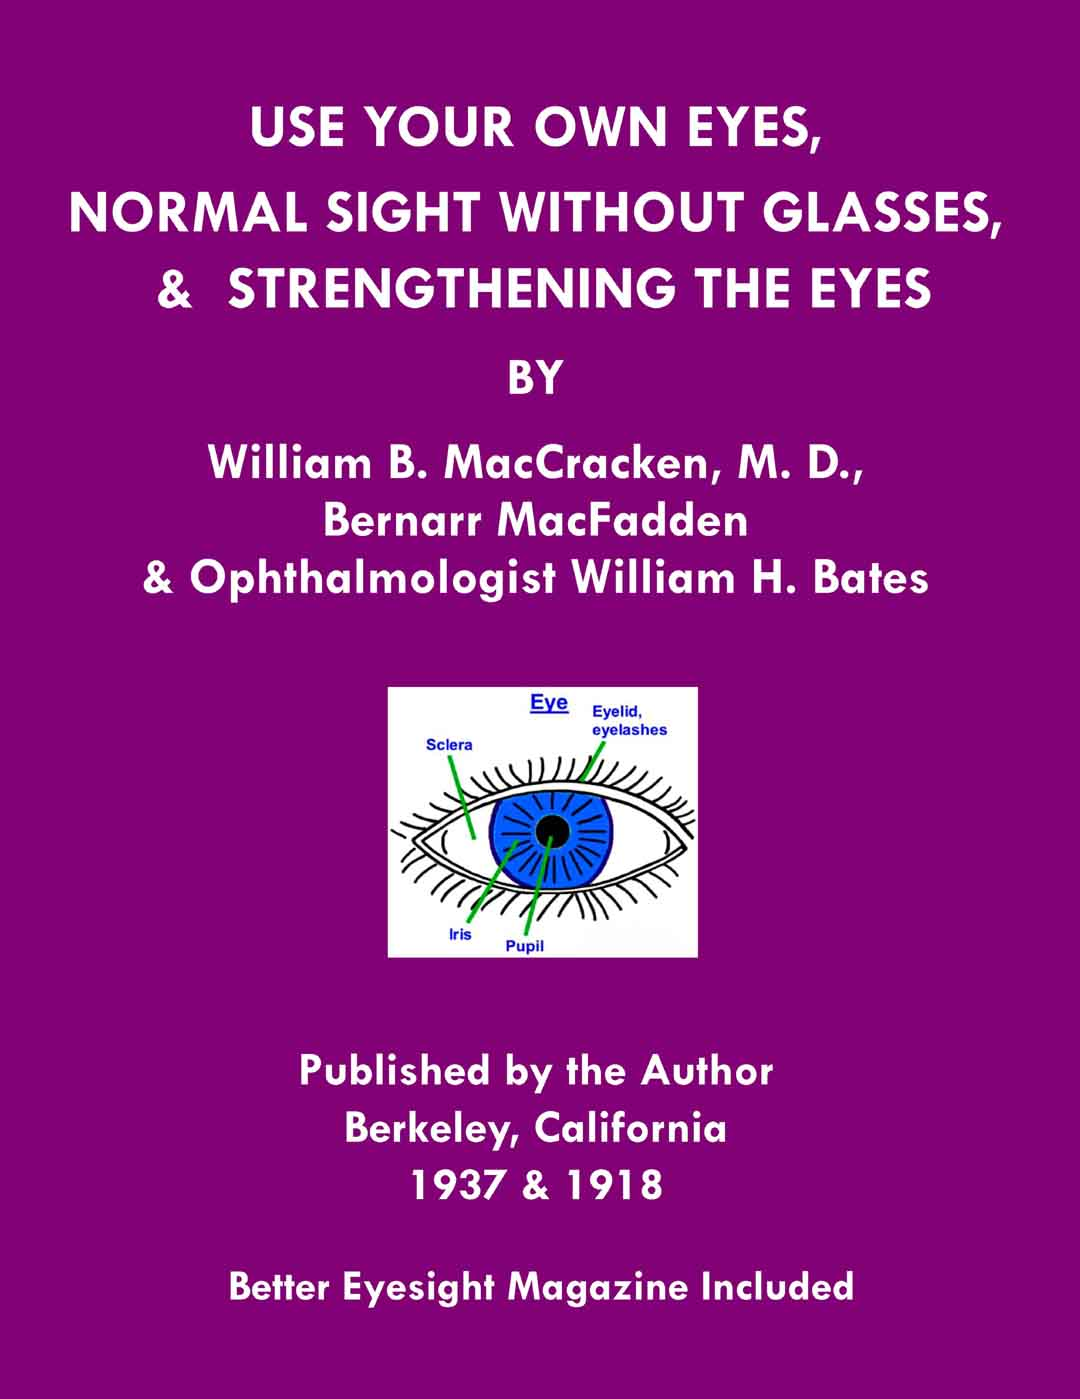 Use Your Own Eyes, Normal Sight Without Glasses and Strengthening The Eyes-Better Eyesight Magazine by William B MacCracken, Bernarr MacFadden and William H. Bates